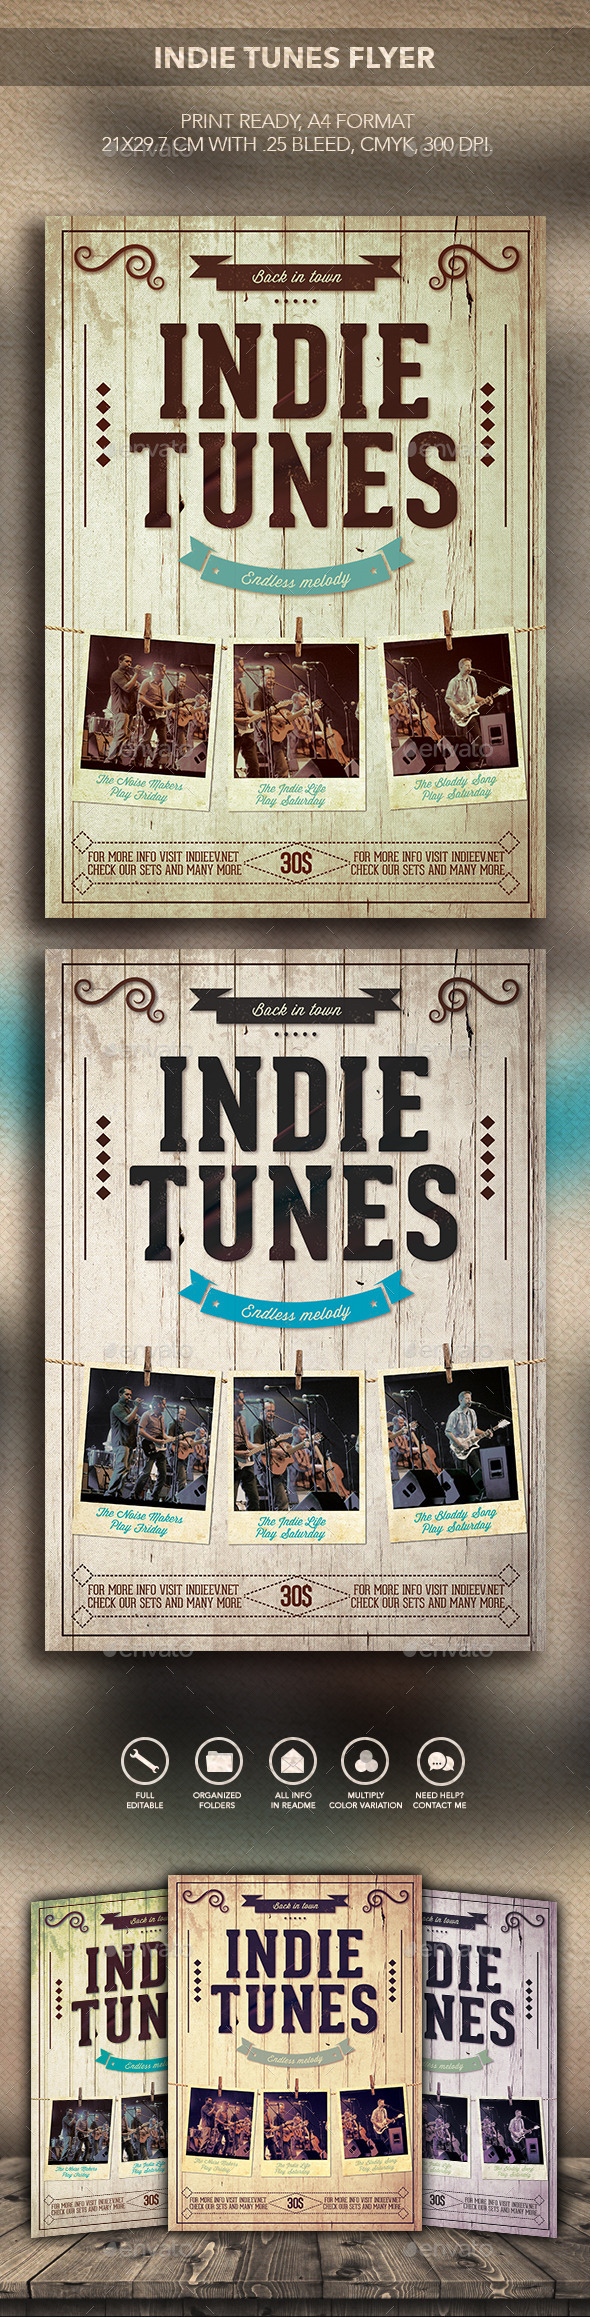 Indie tunes Flyer - Flyers Print Templates